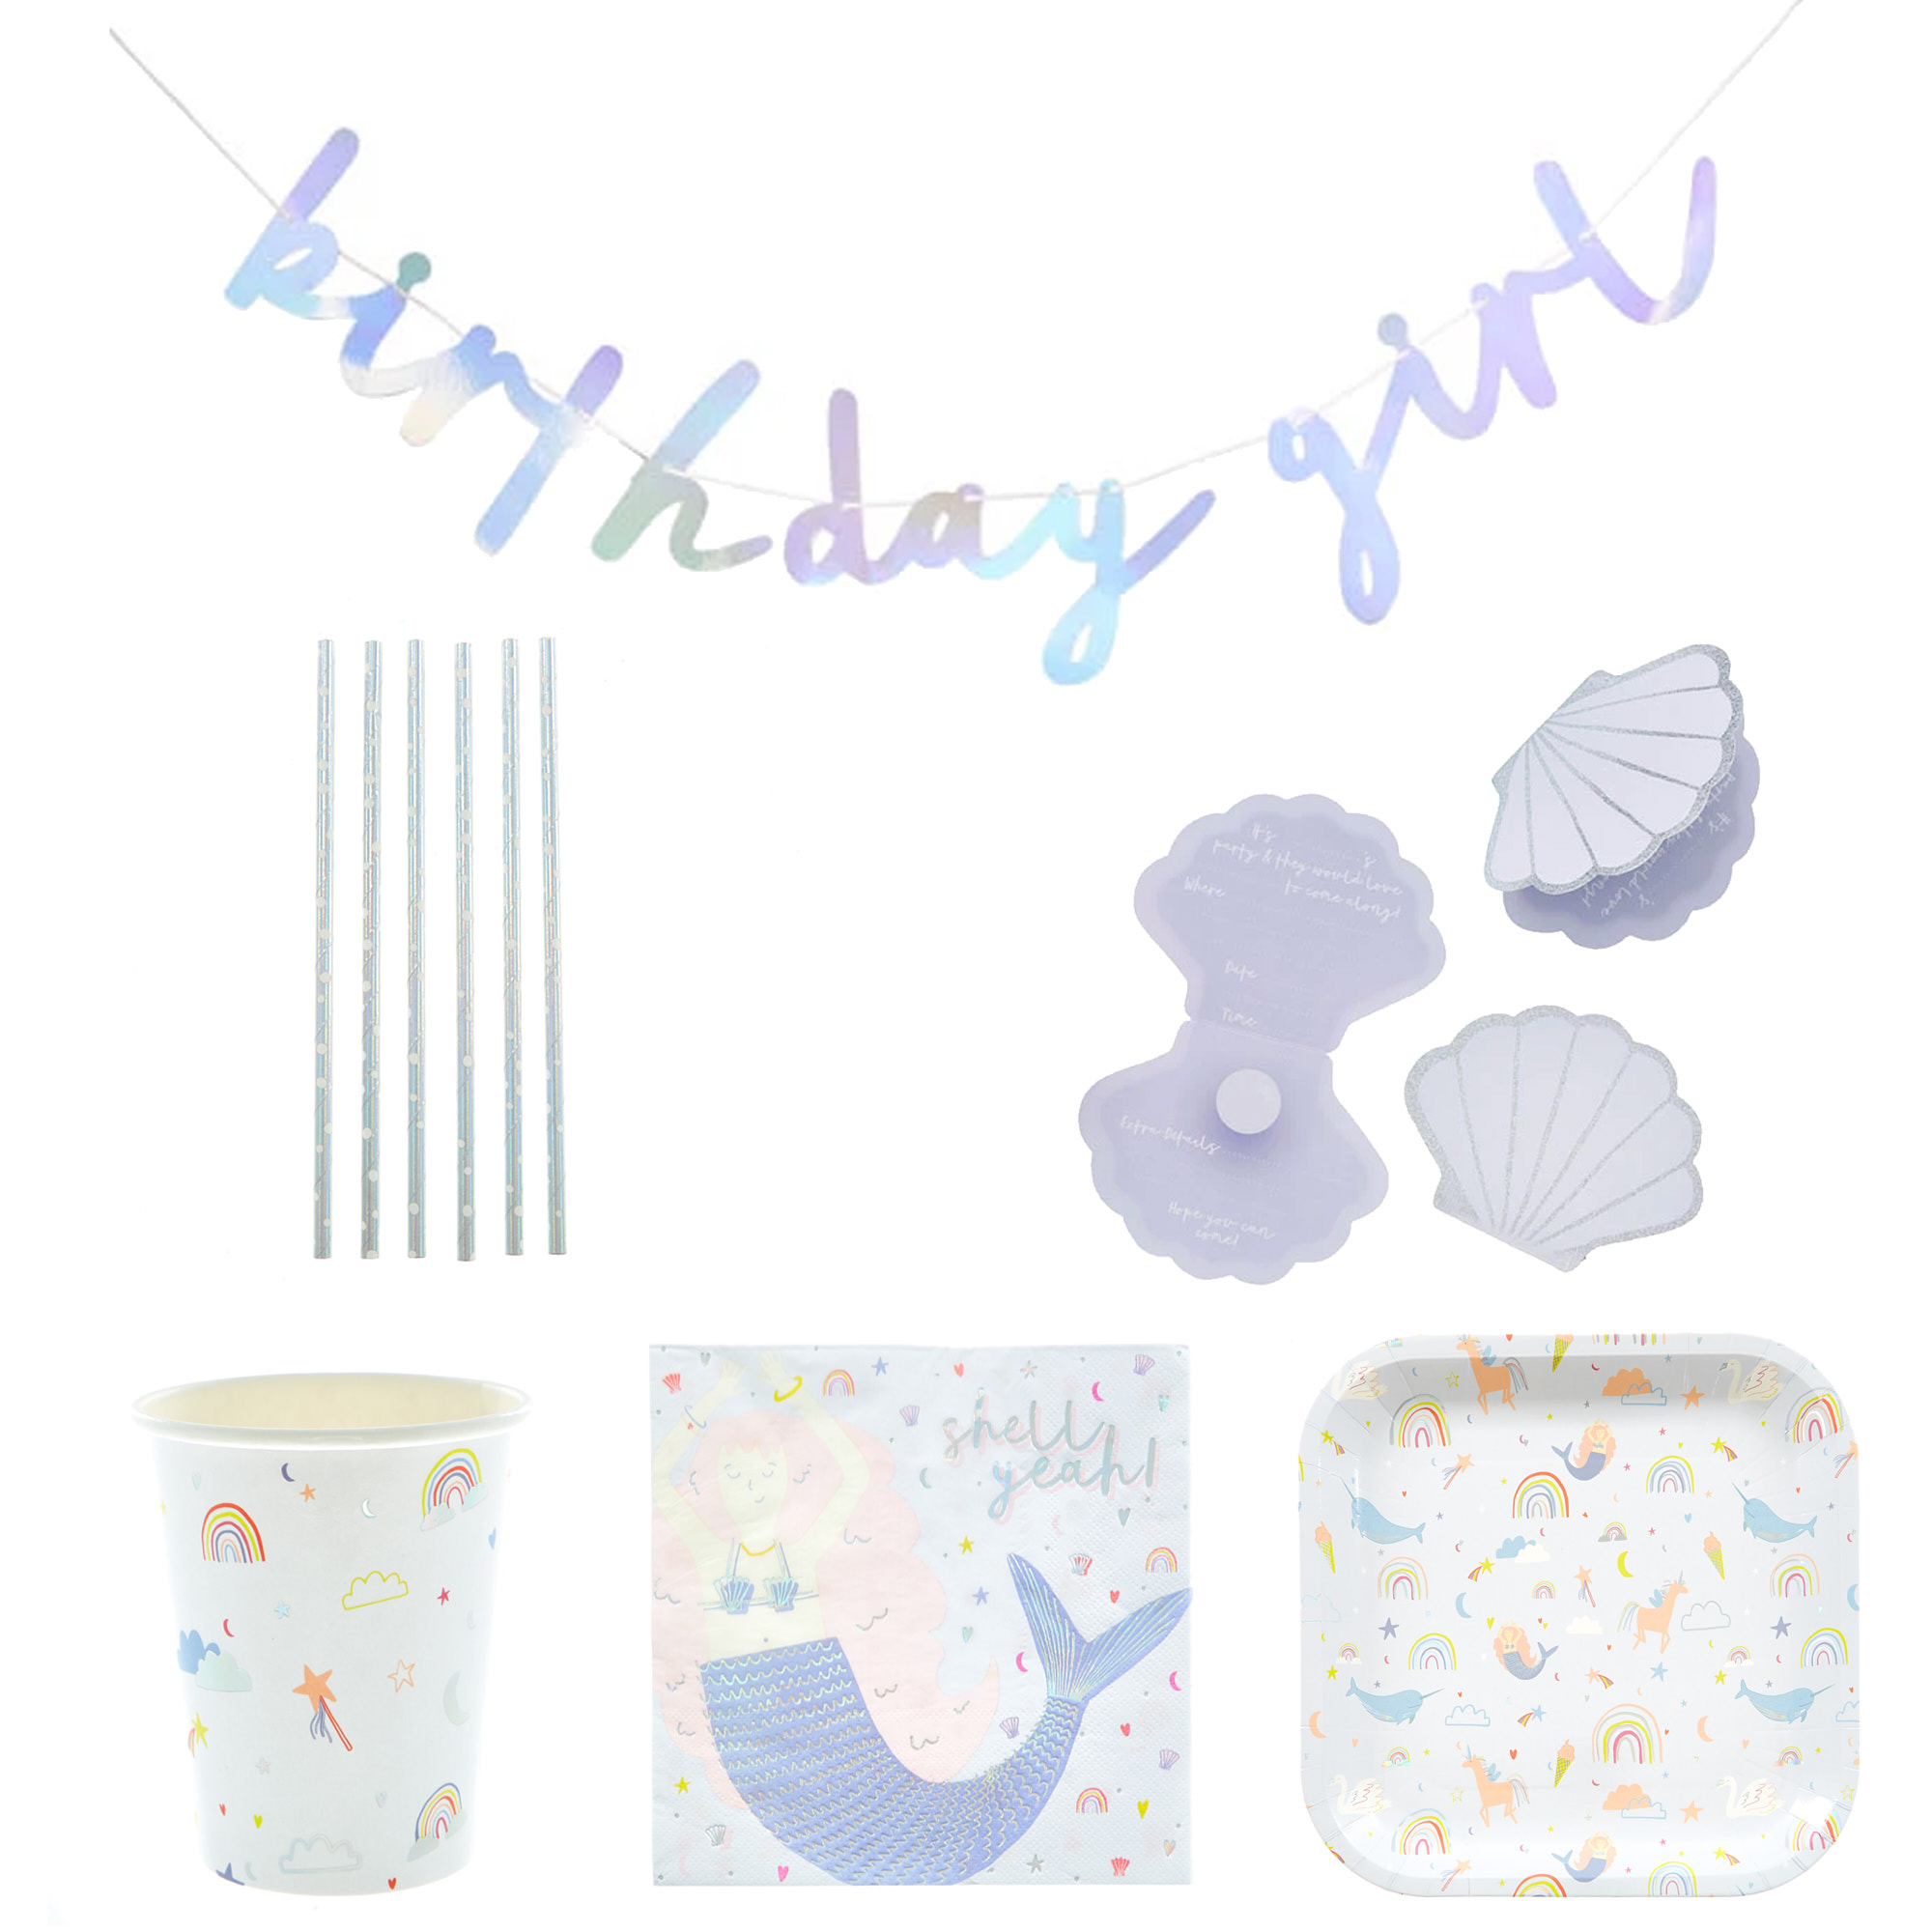 Magical Unicorn Birthday Party Tableware & Decorations Bundle - 66 Pieces